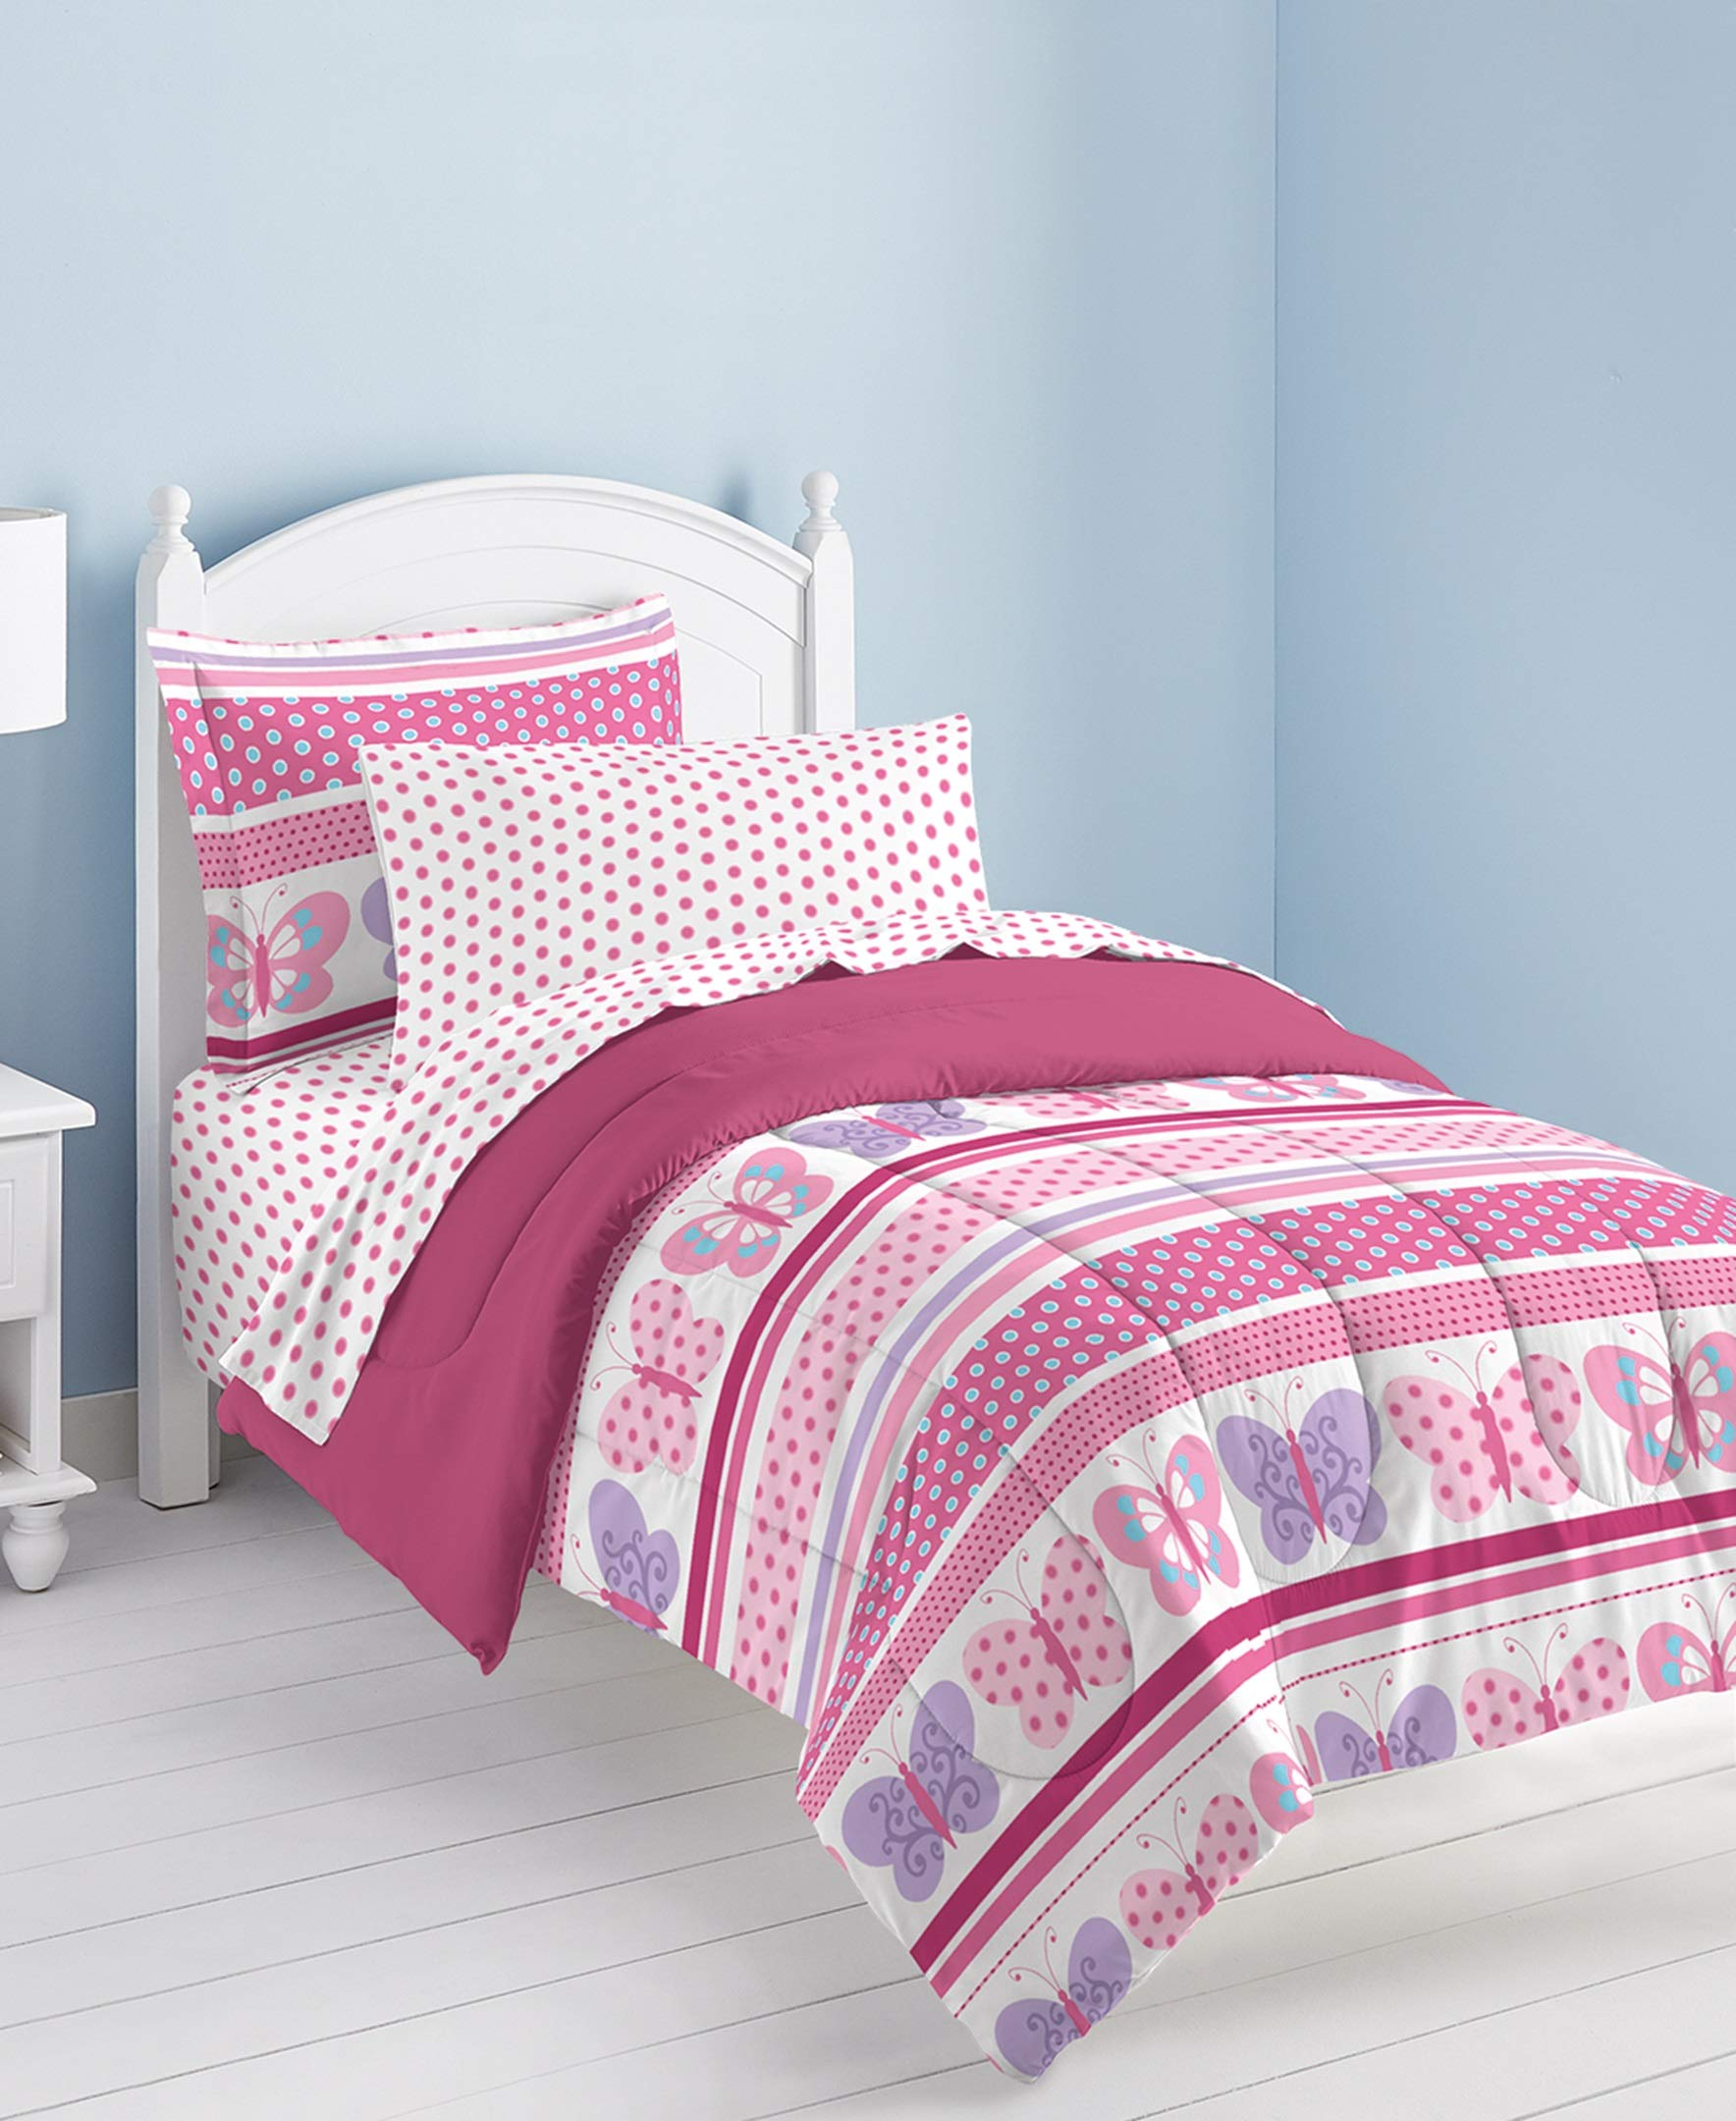 Dream Factory Butterfly Dots Ultra Soft Microfiber Girls Comforter Set, Pink, Twin by Dream Factory (Image #6)